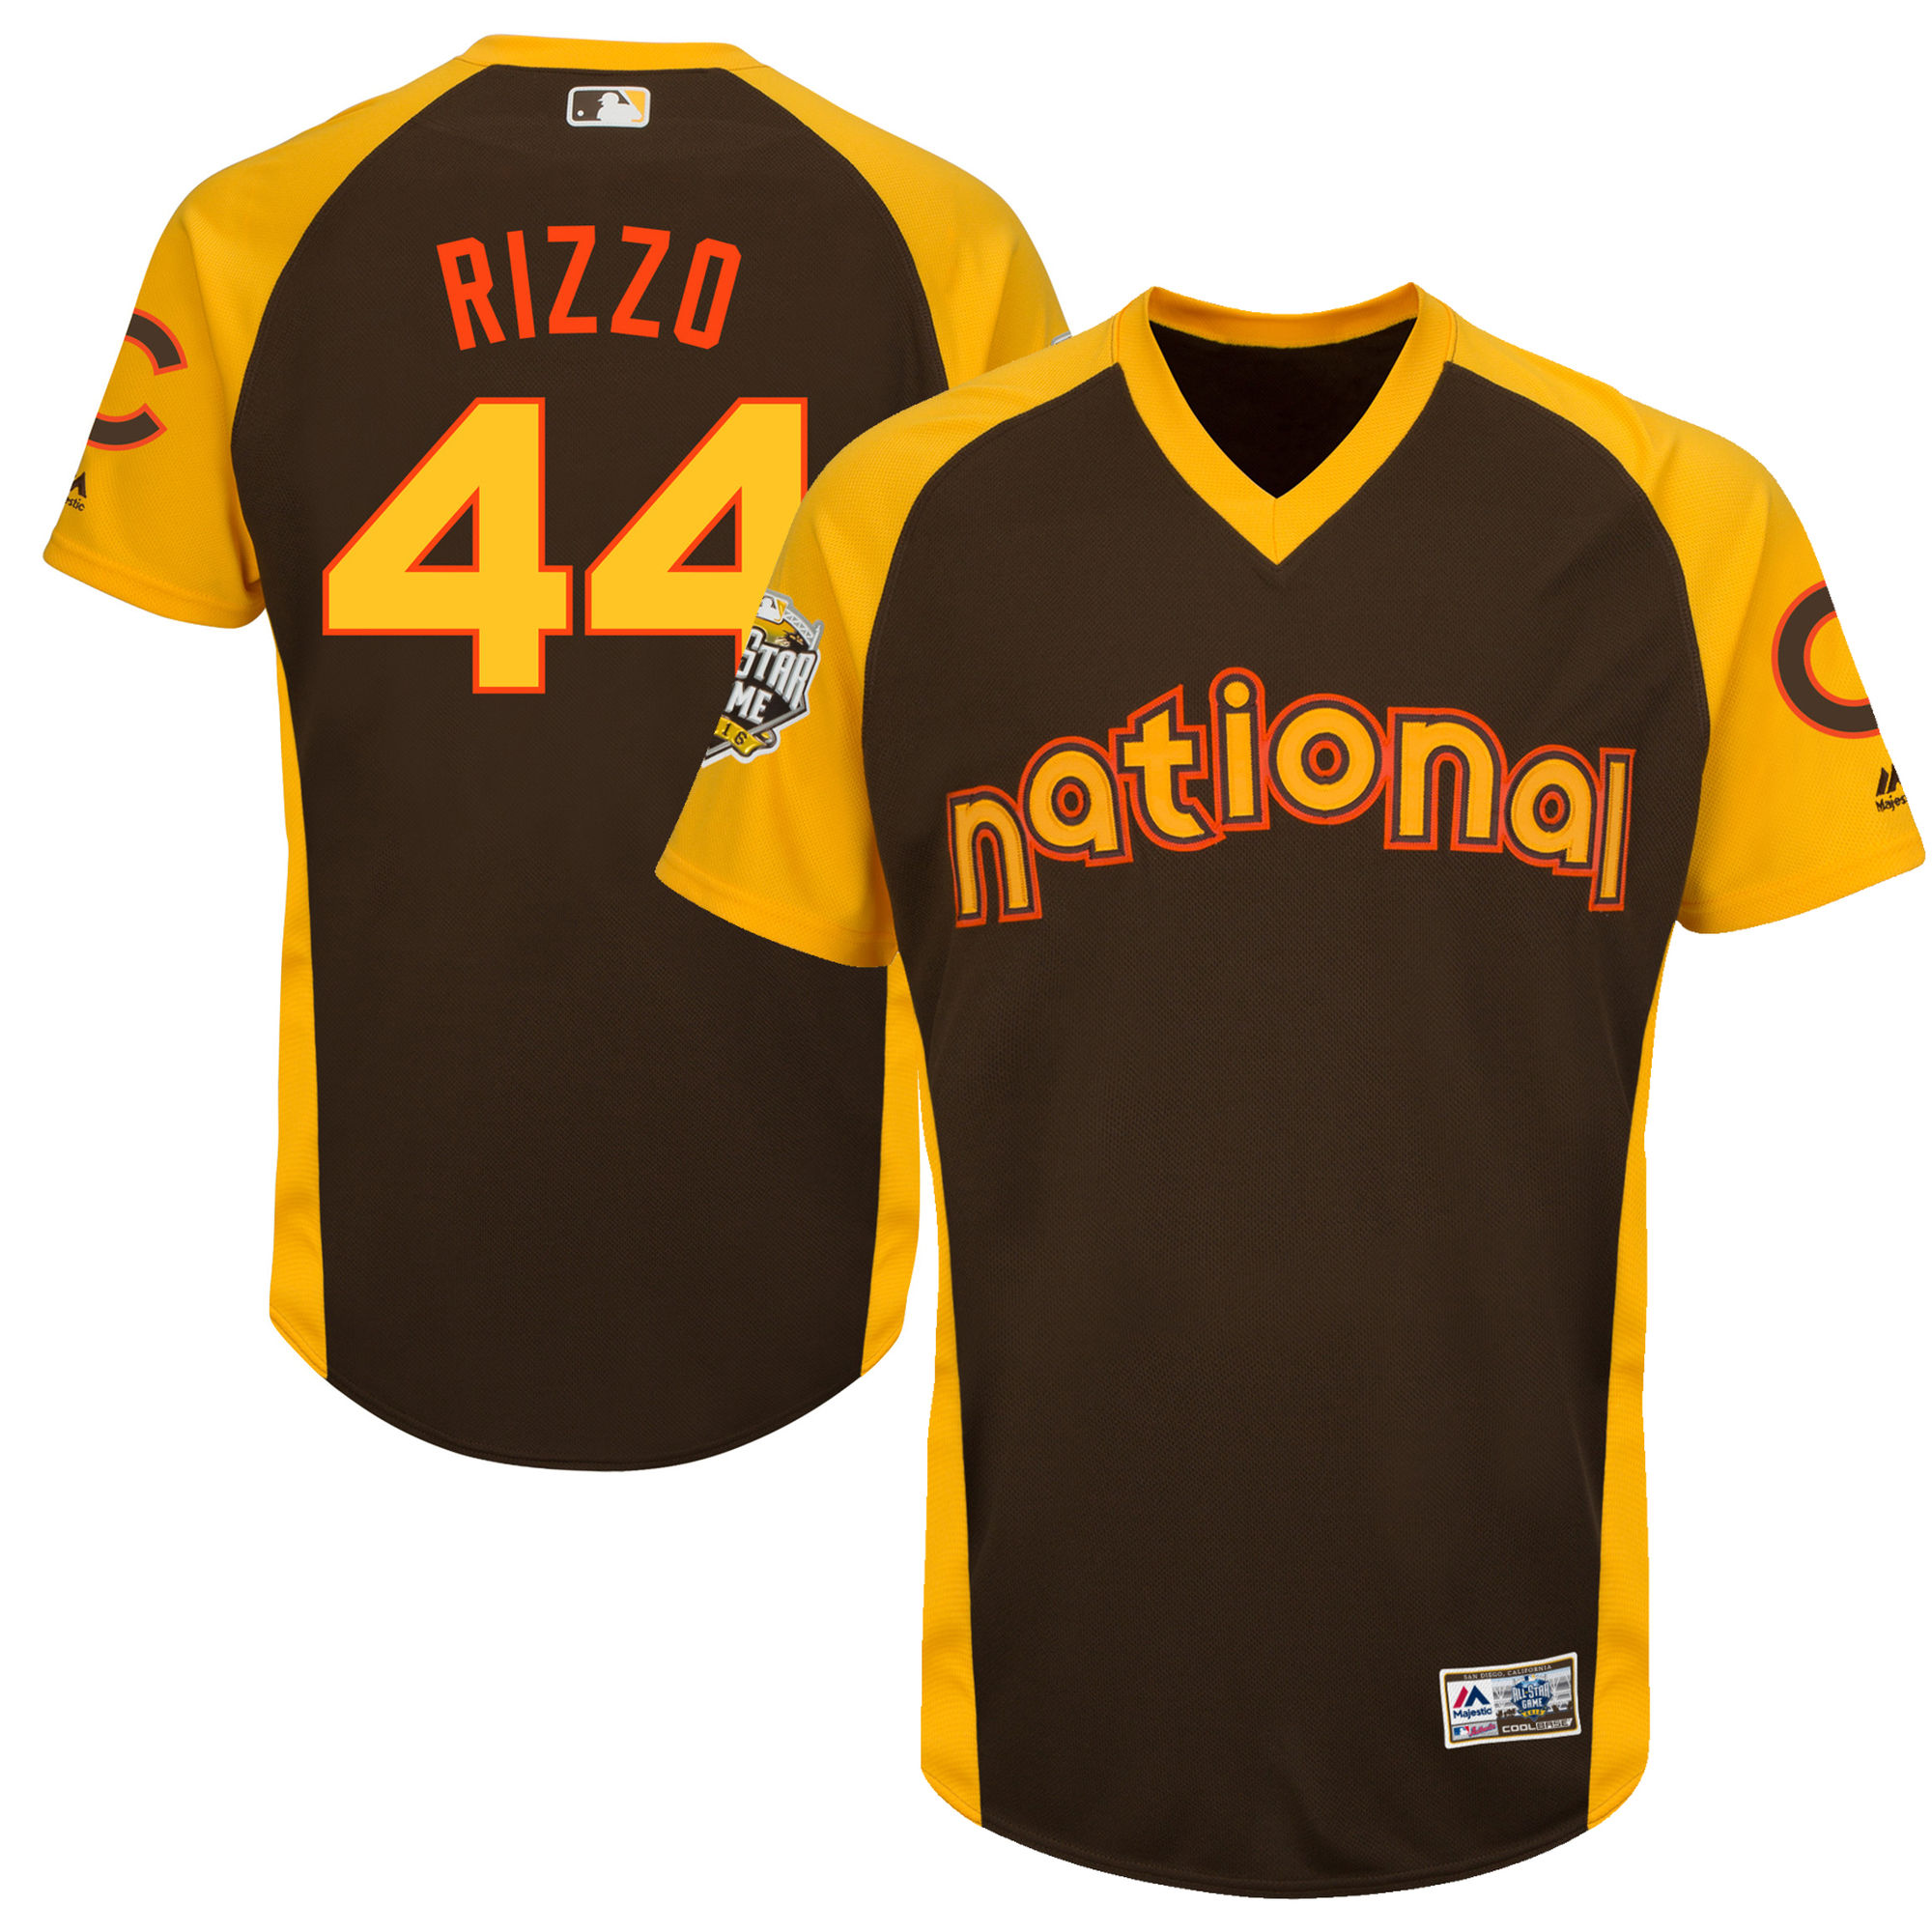 Cubs 44 Anthony Rizzo Brown Youth 2016 All-Star Game Cool Base Batting Practice Player Jersey